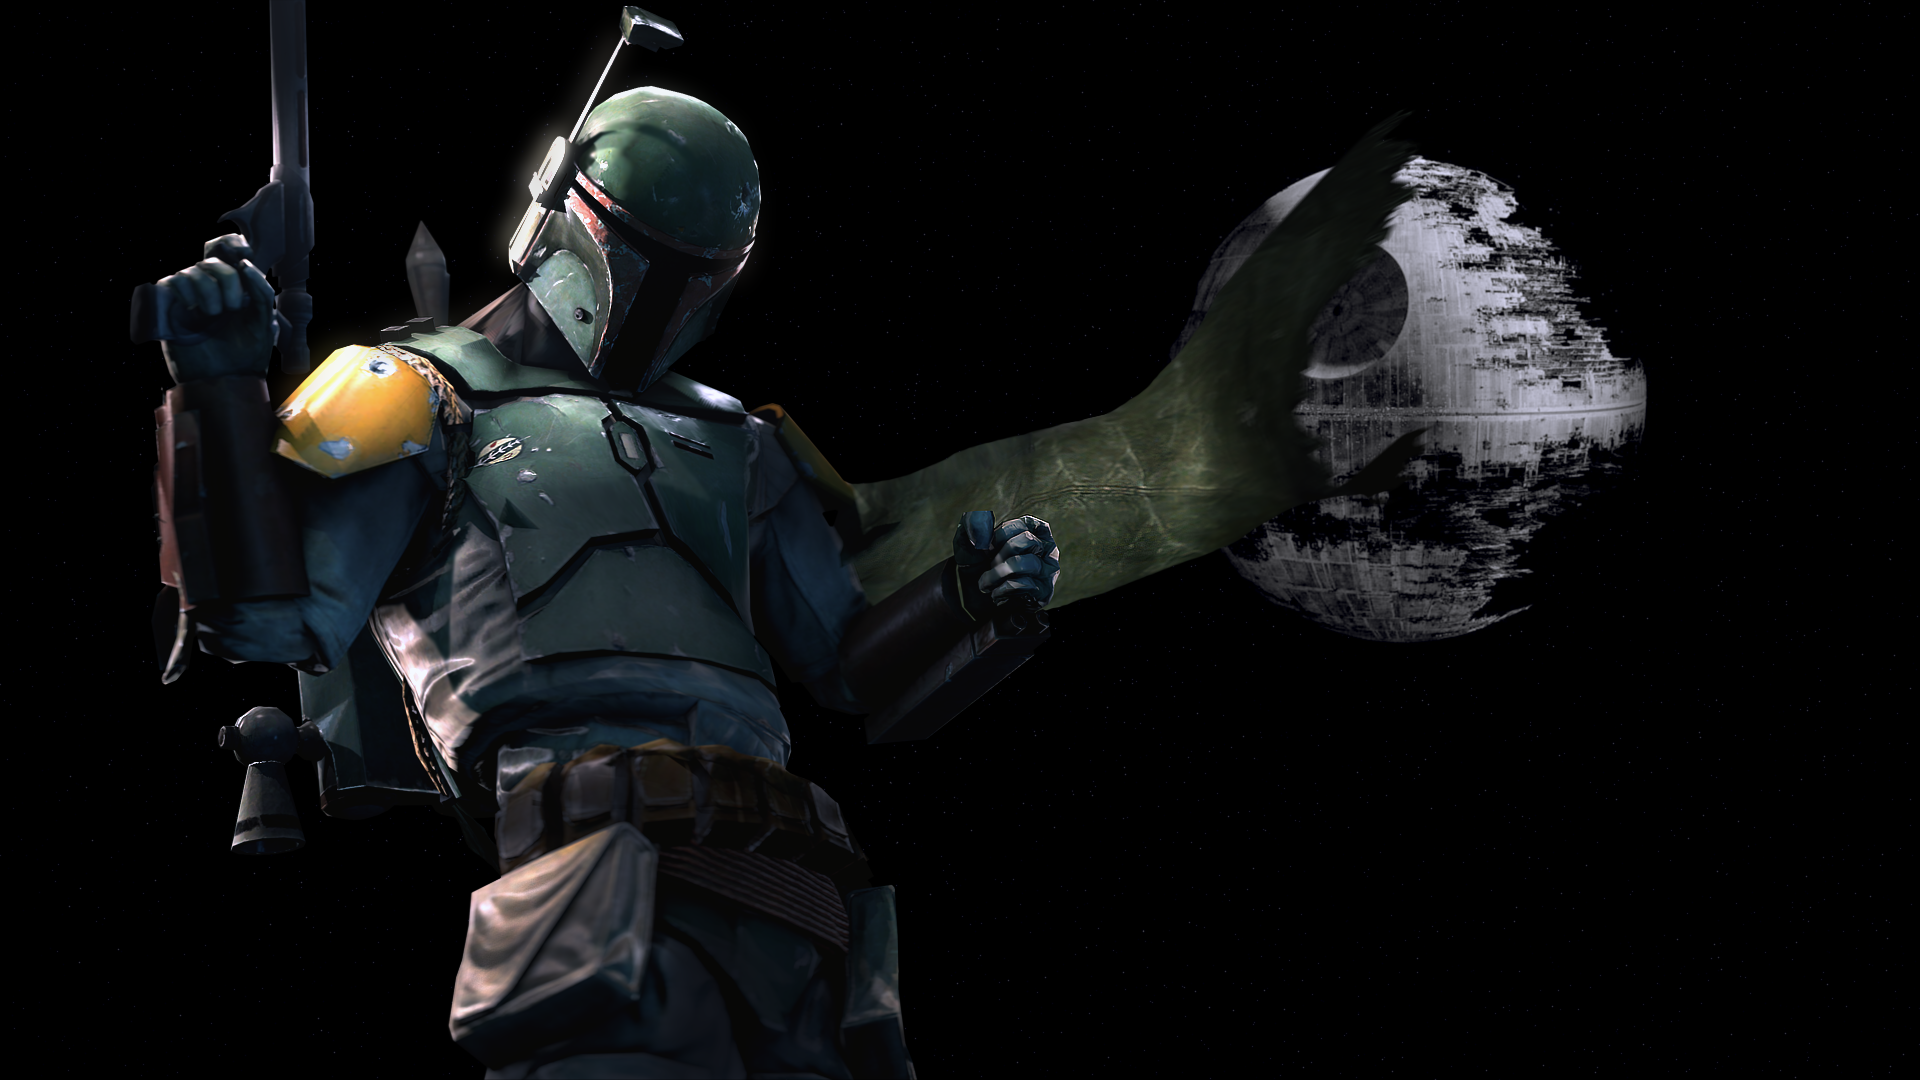 Boba Fett Wallpaper by The Combine 1920x1080